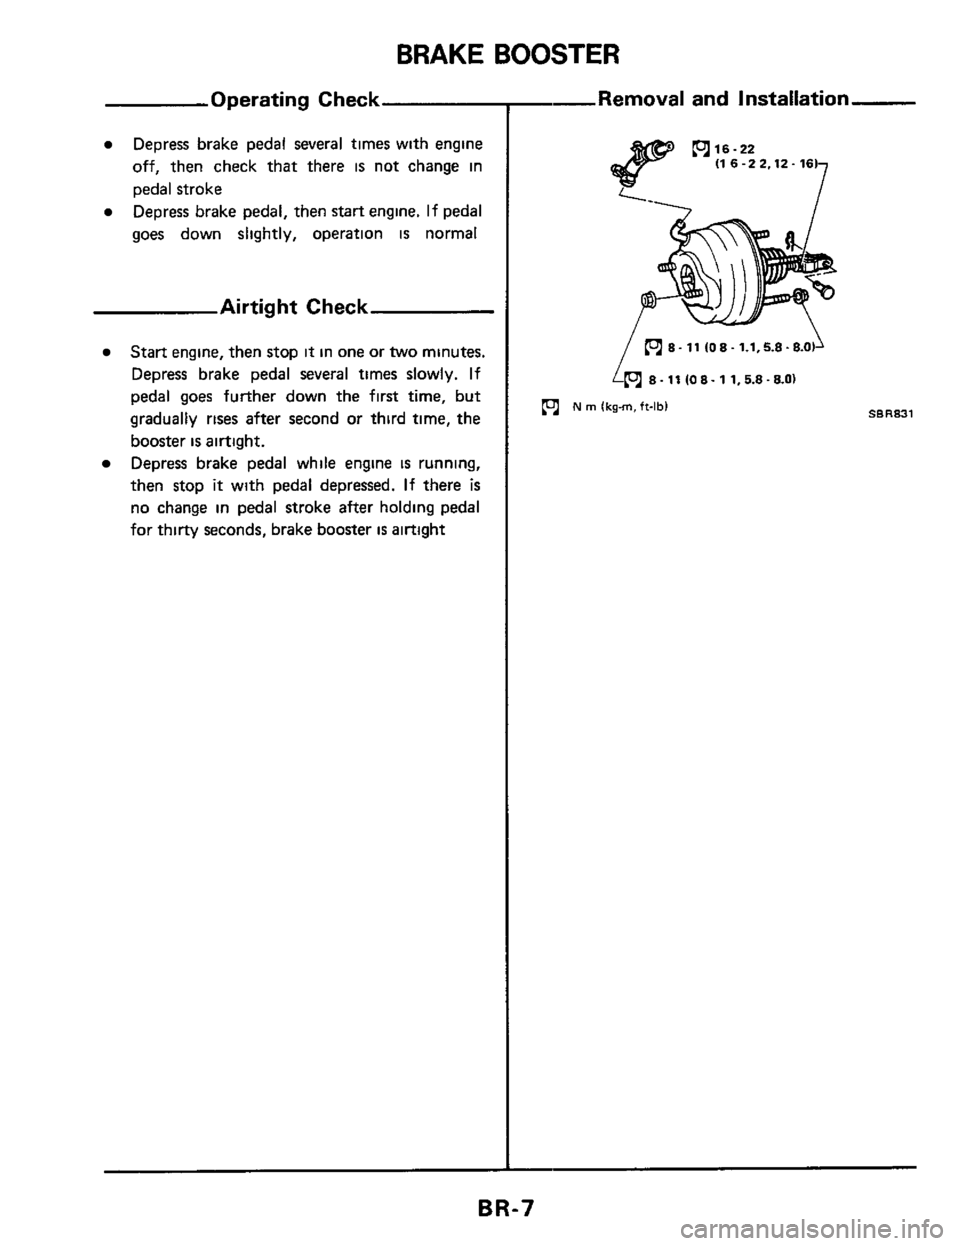 NISSAN 300ZX 1984 Z31 Brake System Workshop Manual, Page 7